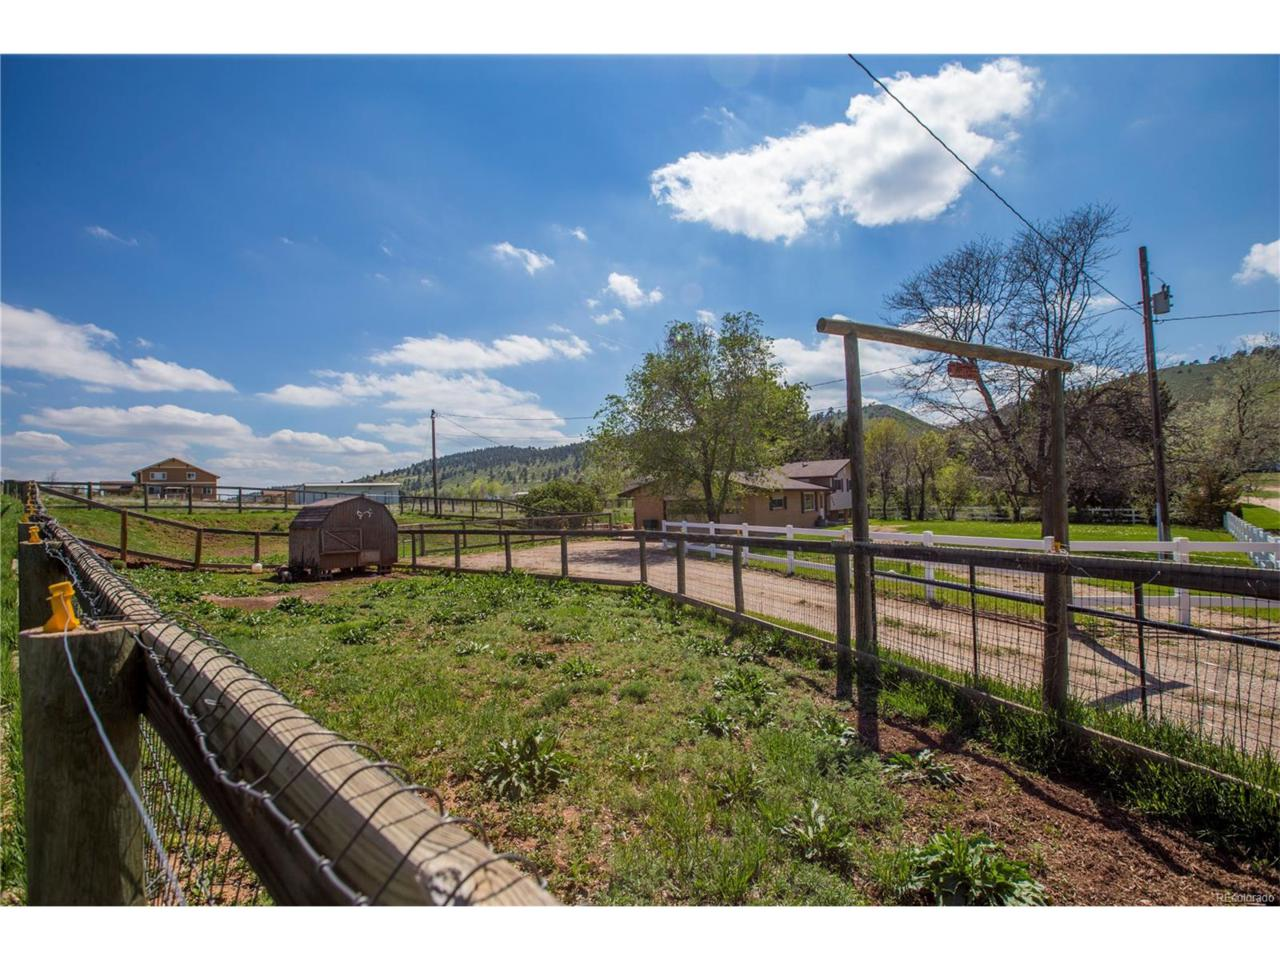 7800 Lela Lane, Loveland, CO 80538 (MLS #2716189) :: 8z Real Estate